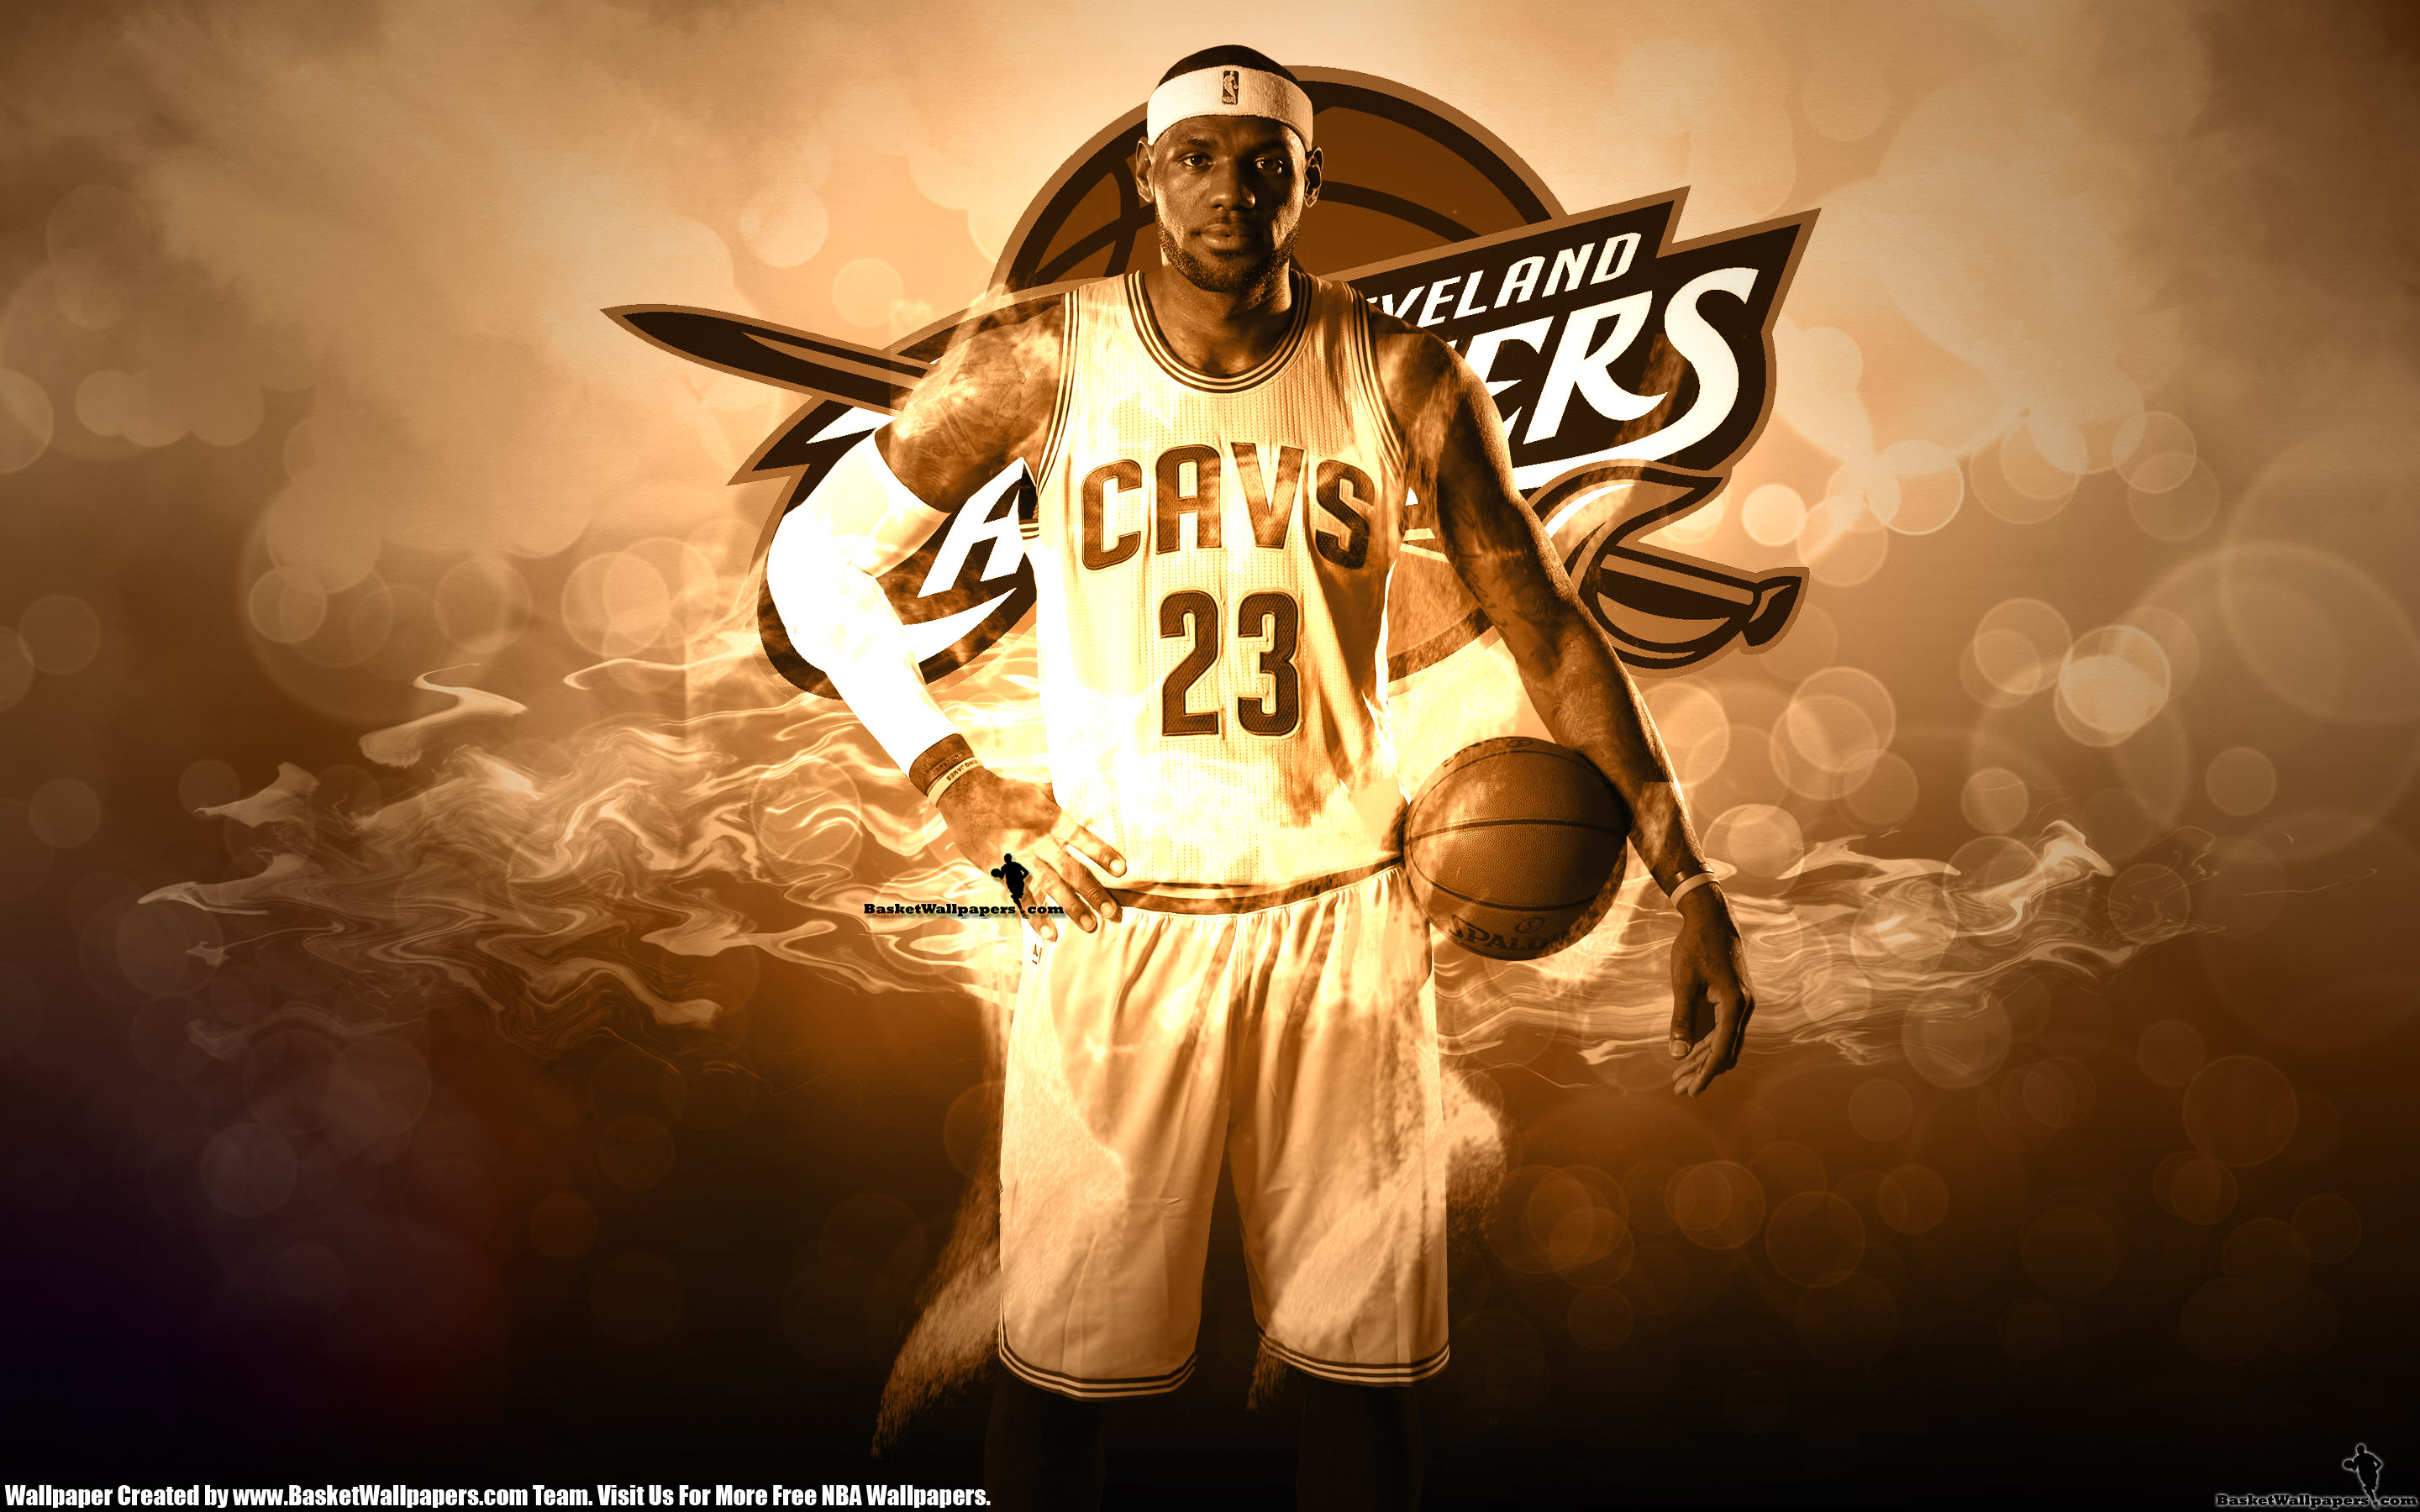 LeBron James Cavaliers 2014 Wallpaper  Basketball Wallpapers at